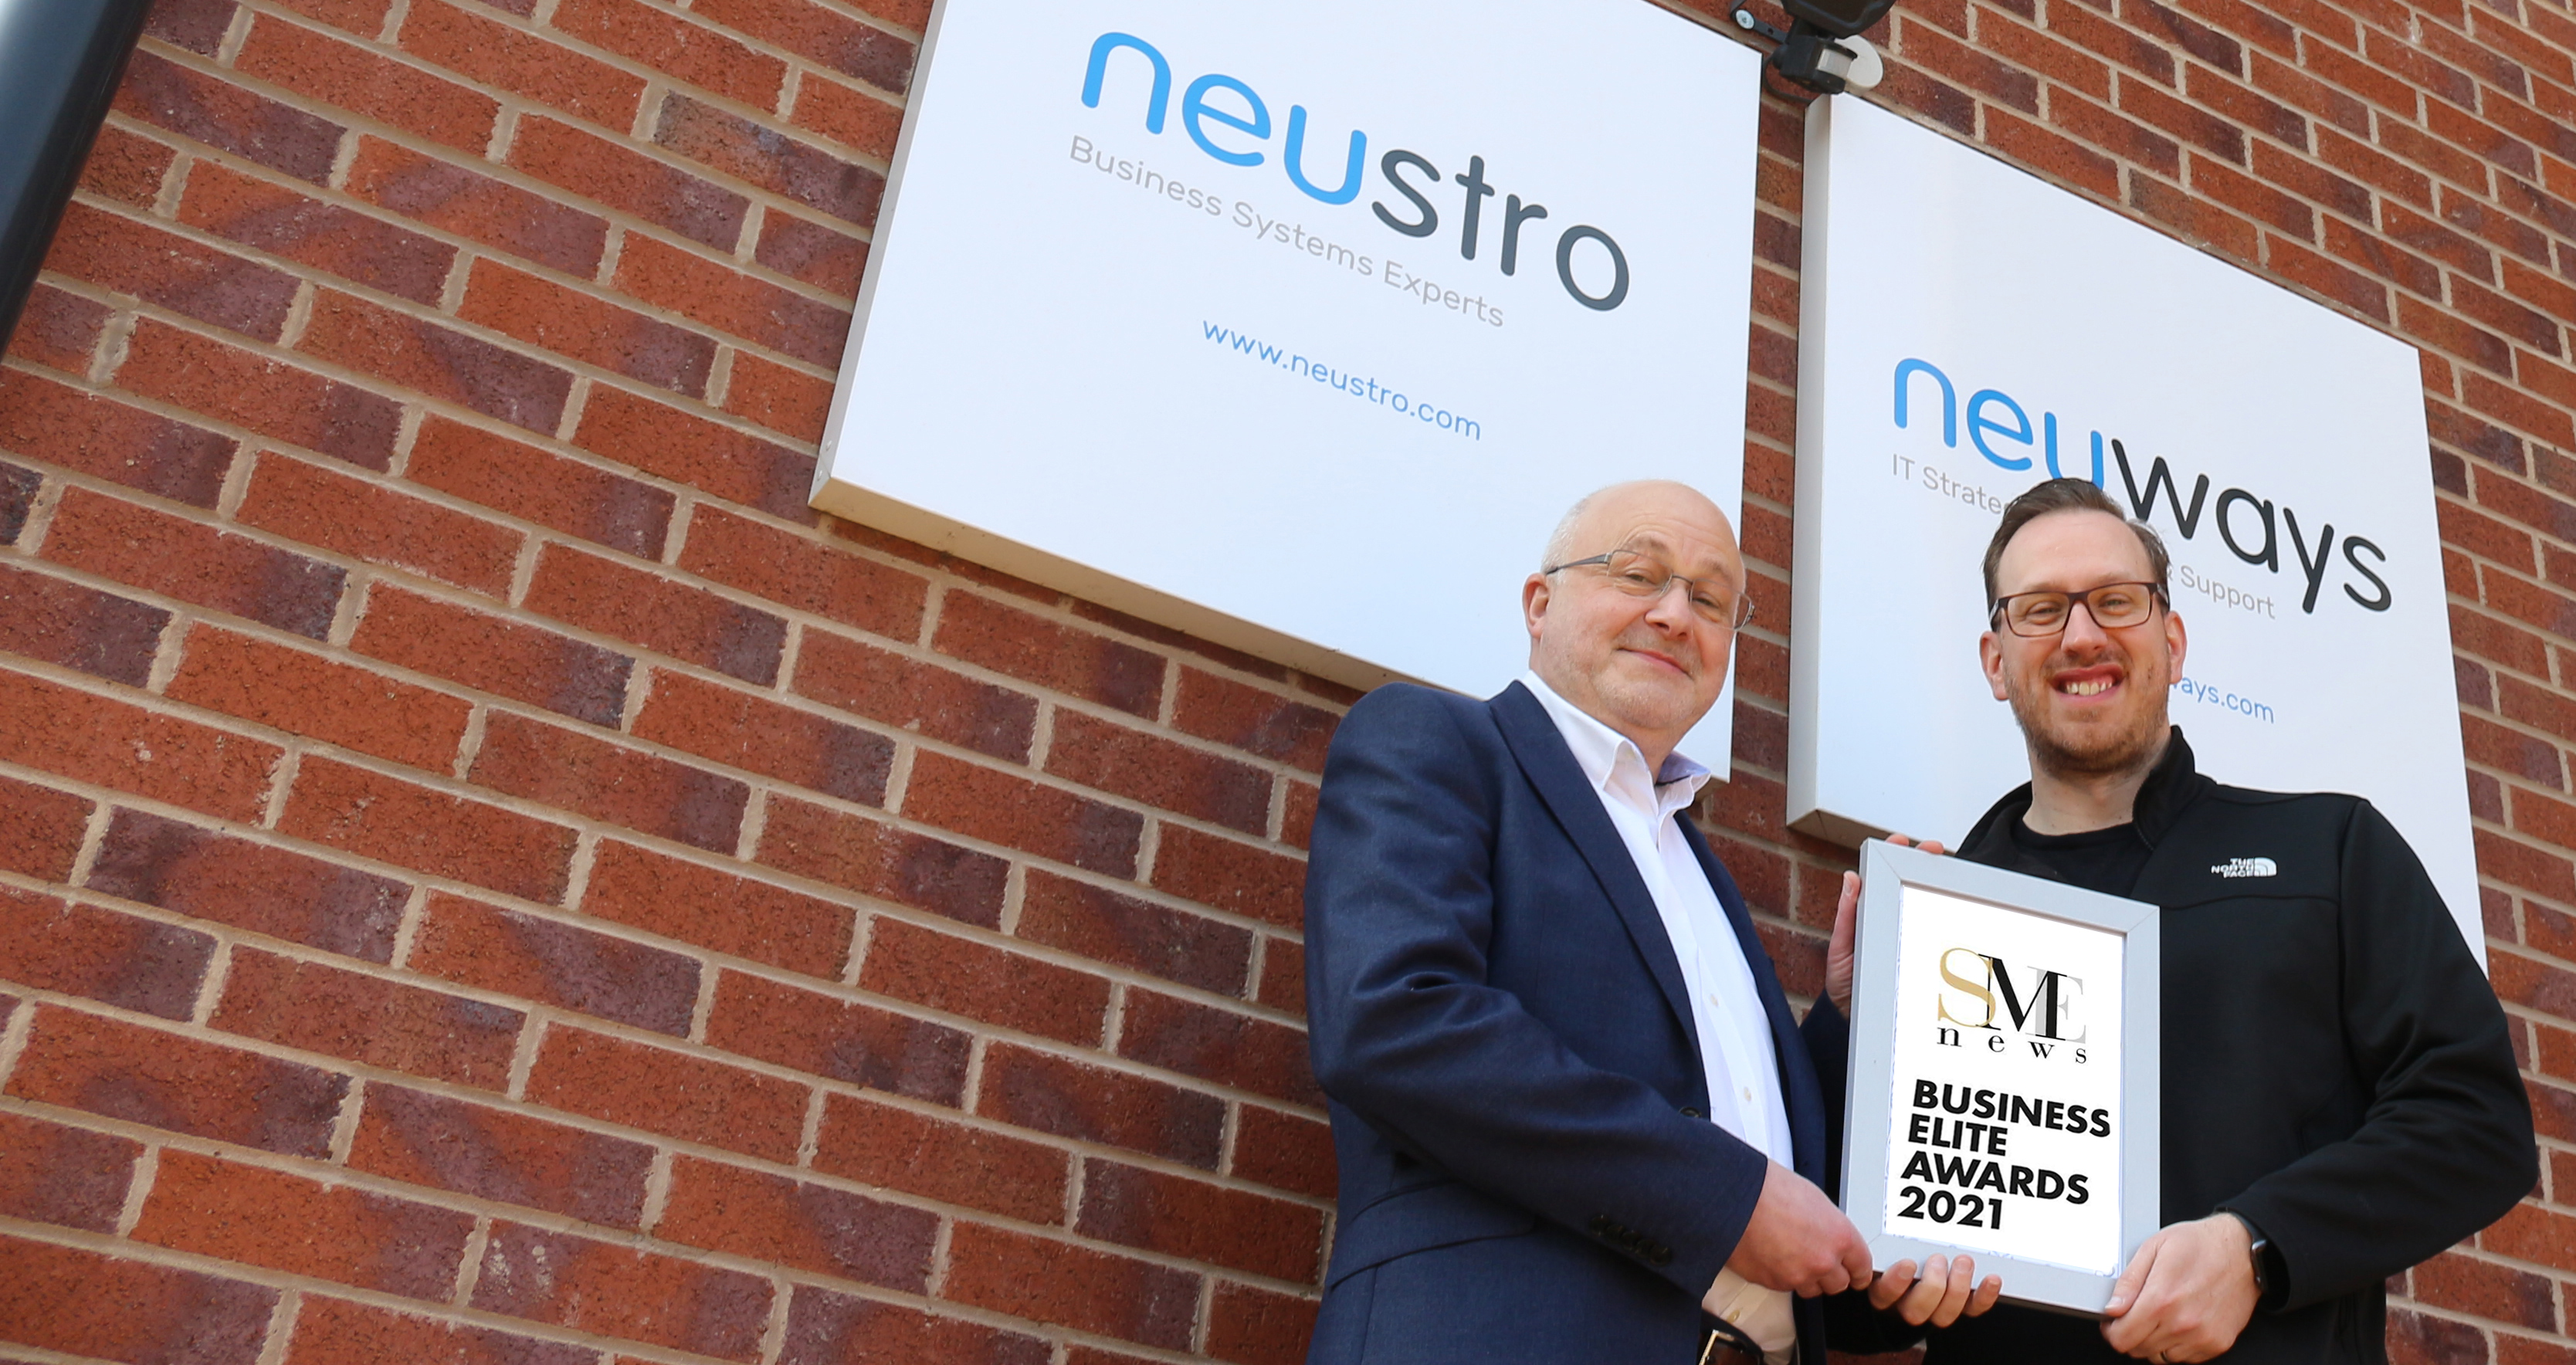 Business IT provider recognised as best in Derby